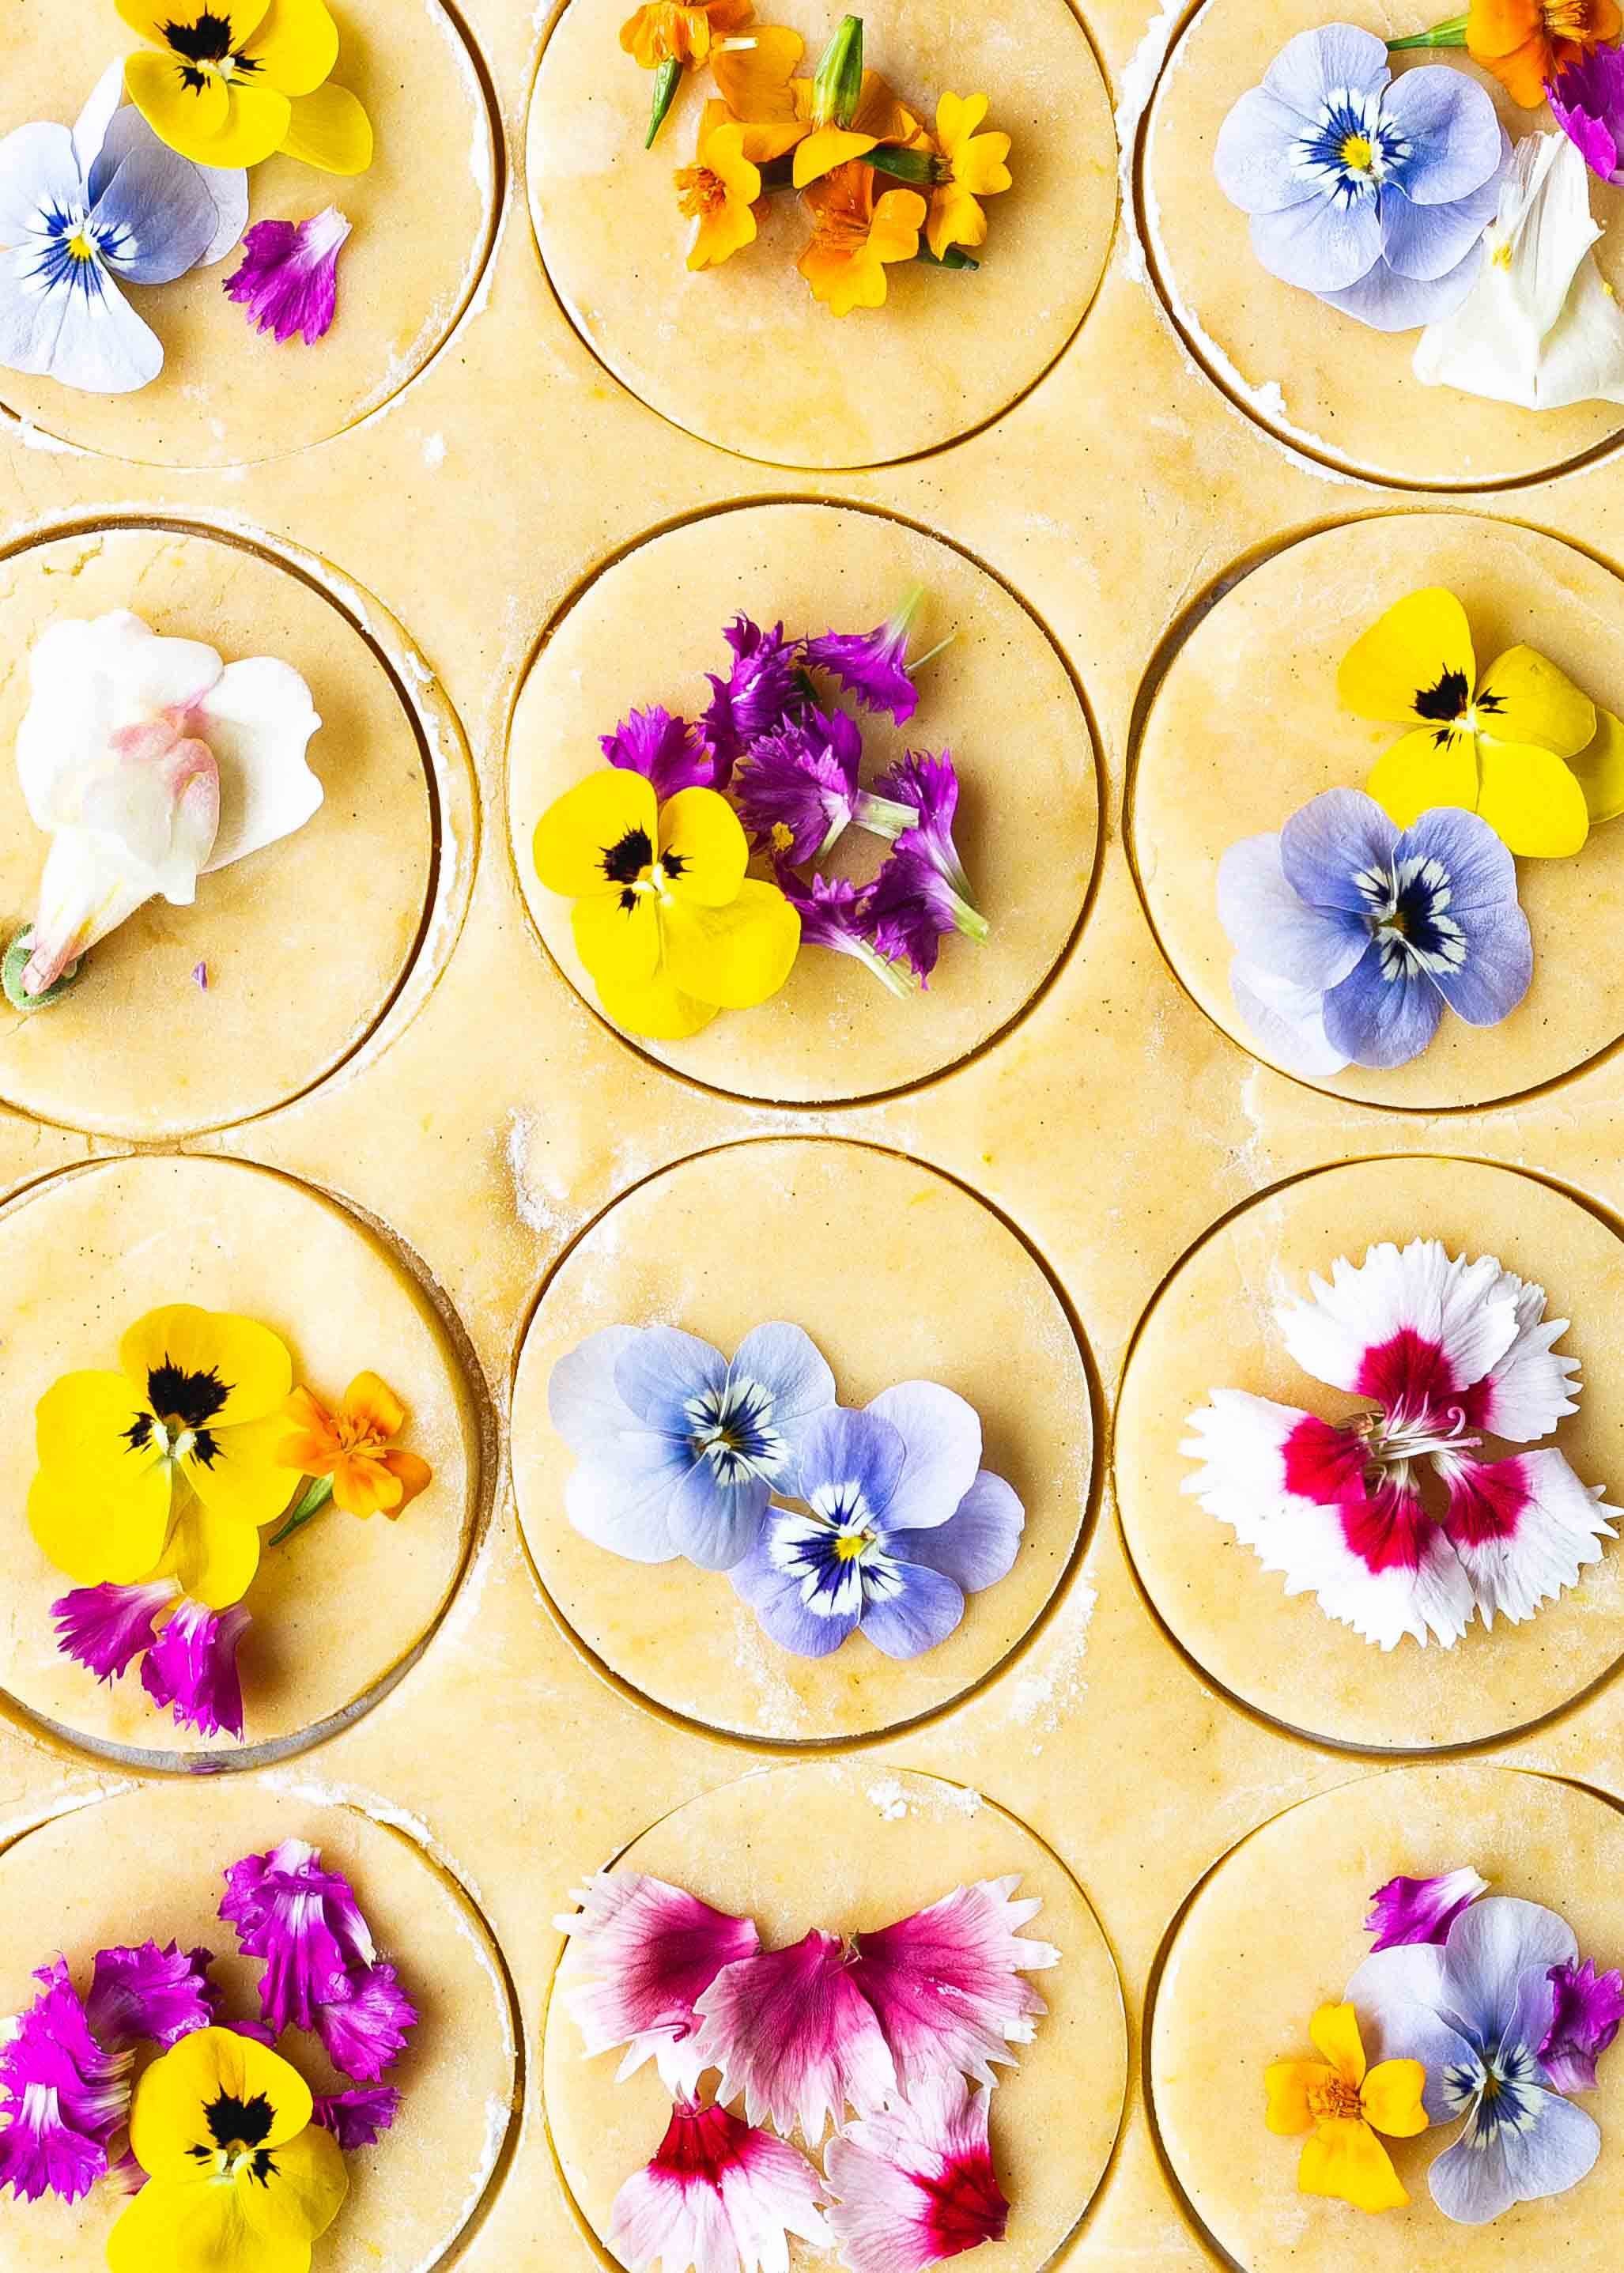 Edible flower gluten free shortbread cookies